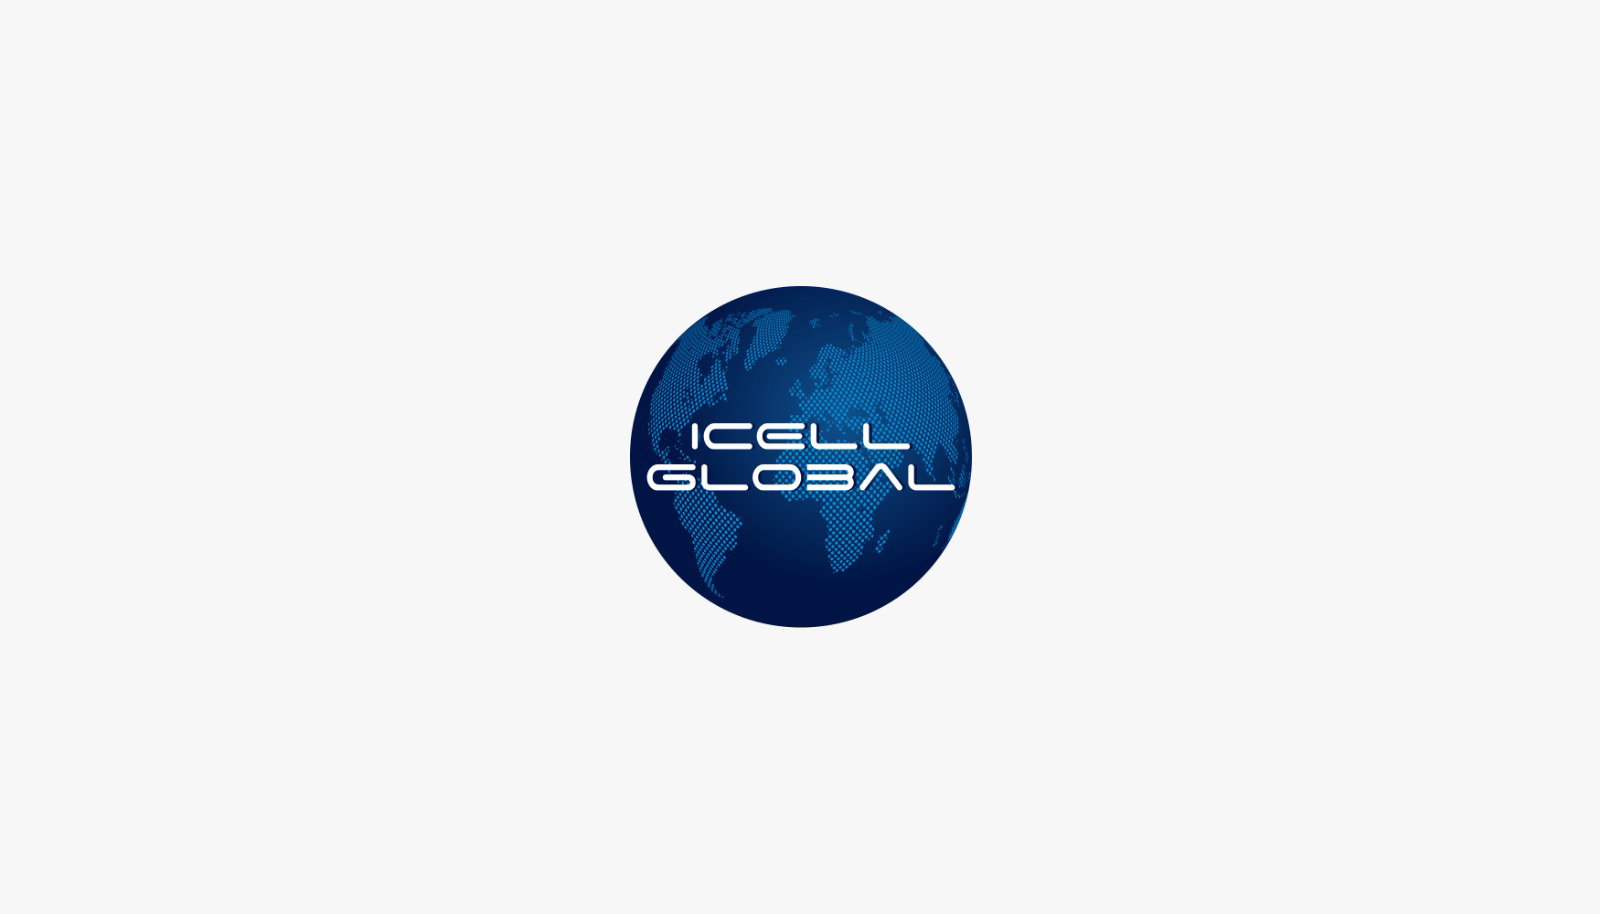 Icellglobal